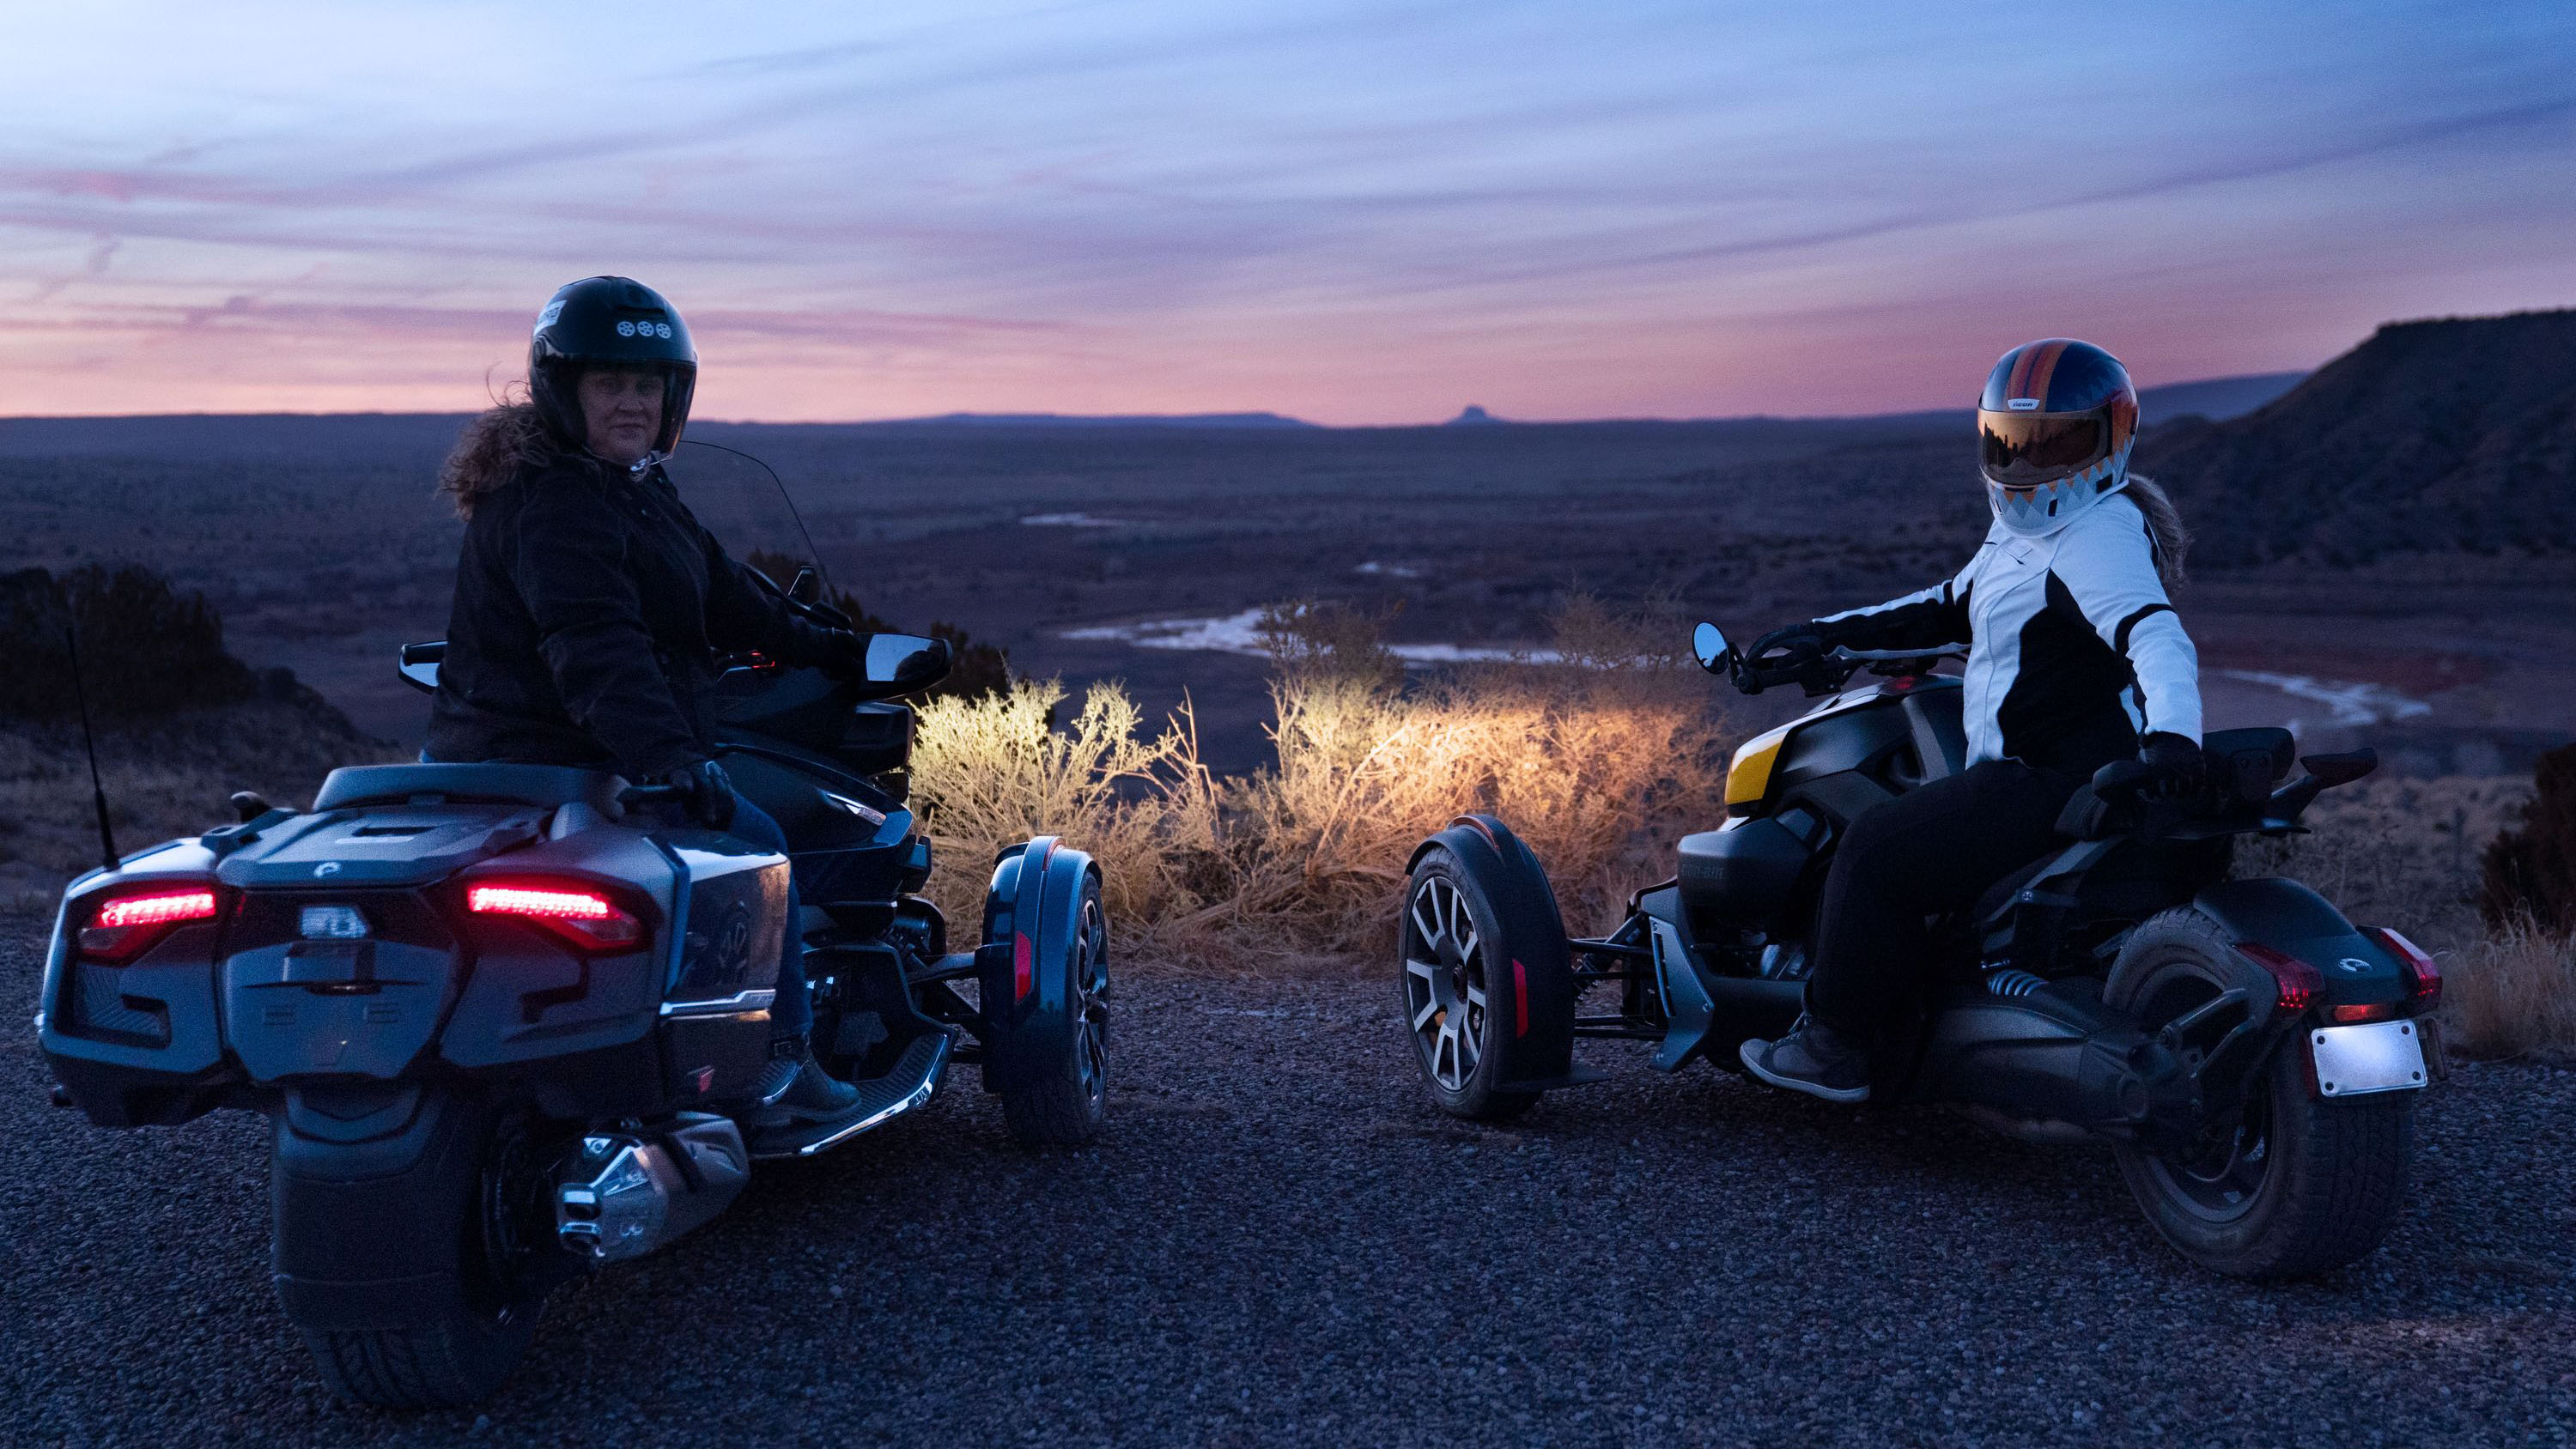 Two riders taking in scenery at dusk